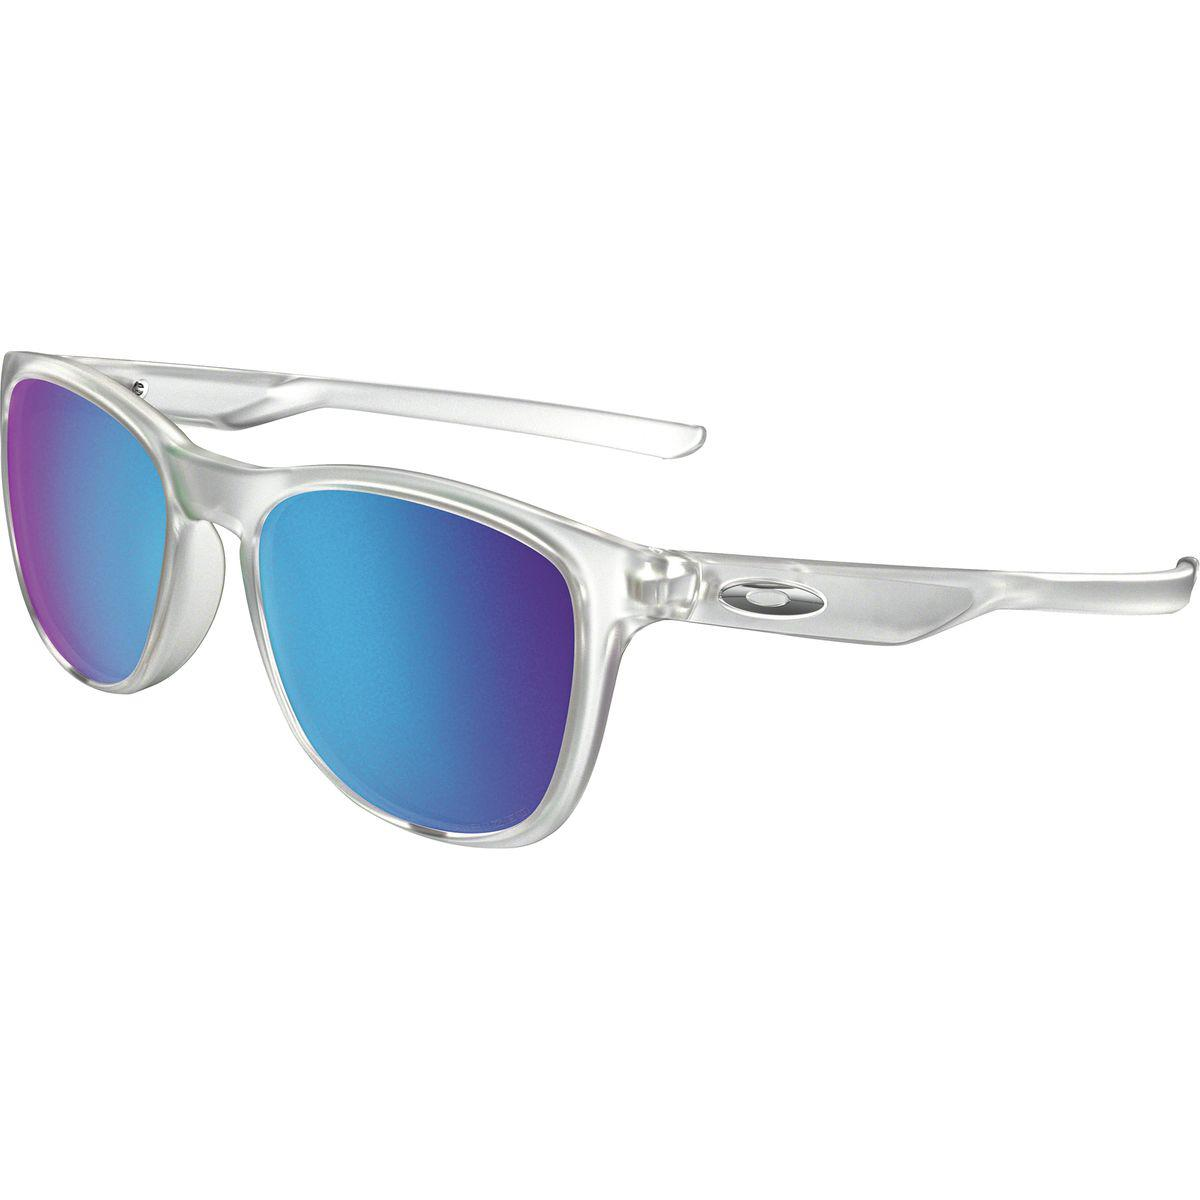 bd2a5bdf1a4 Lyst - Oakley Trillbe X Sunglasses - Polarized in Blue for Men